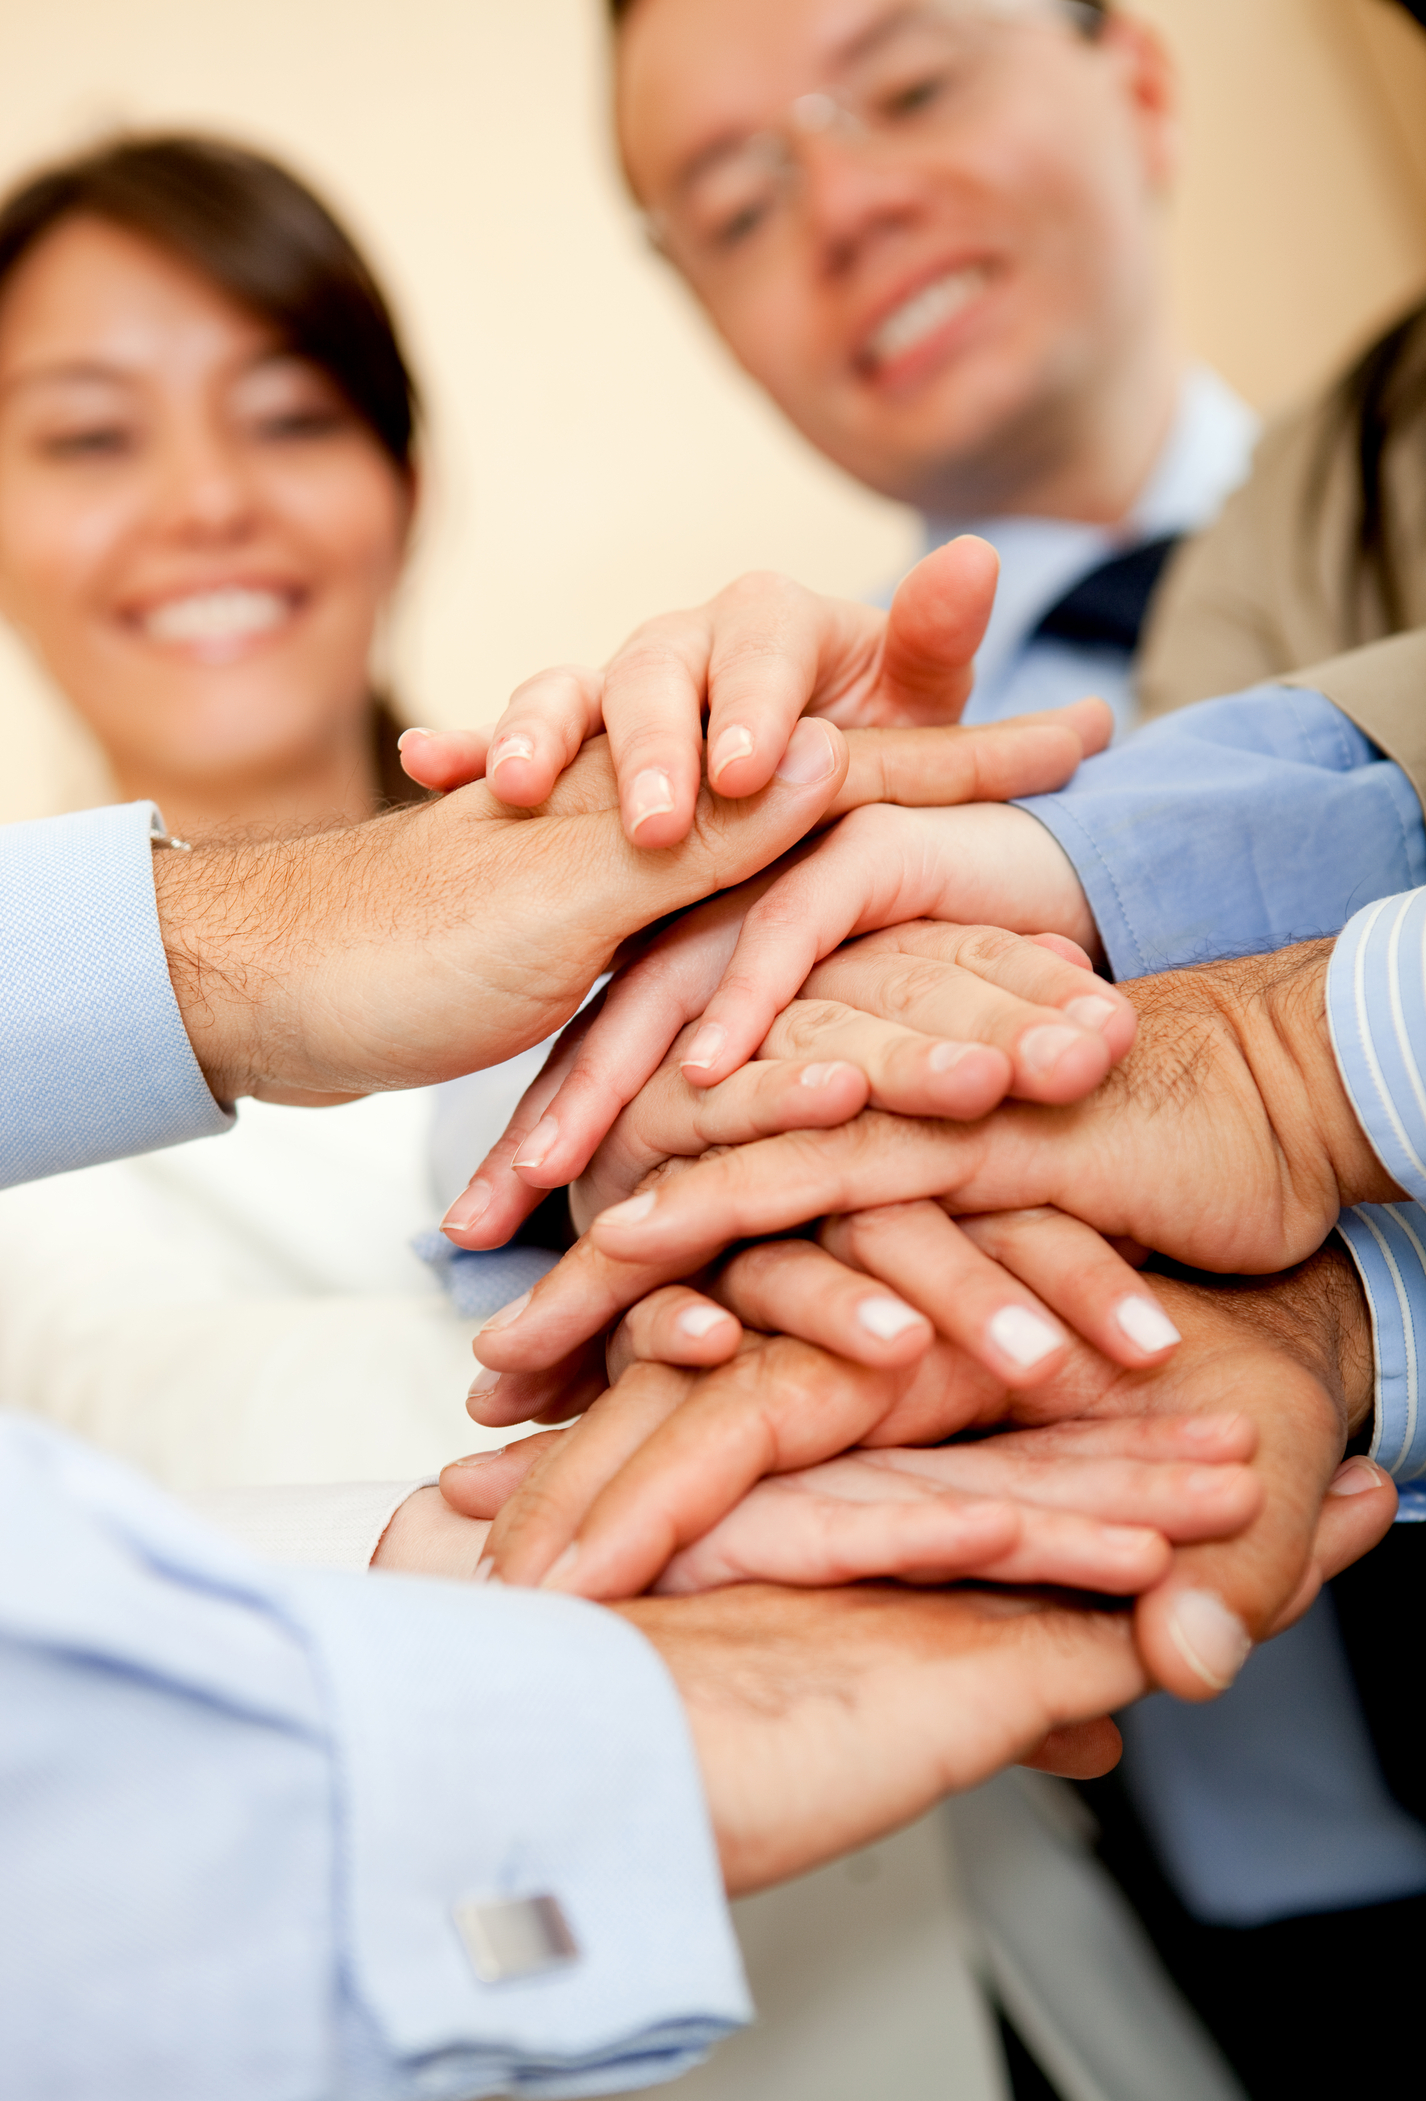 Employee Engagement: All About The Team